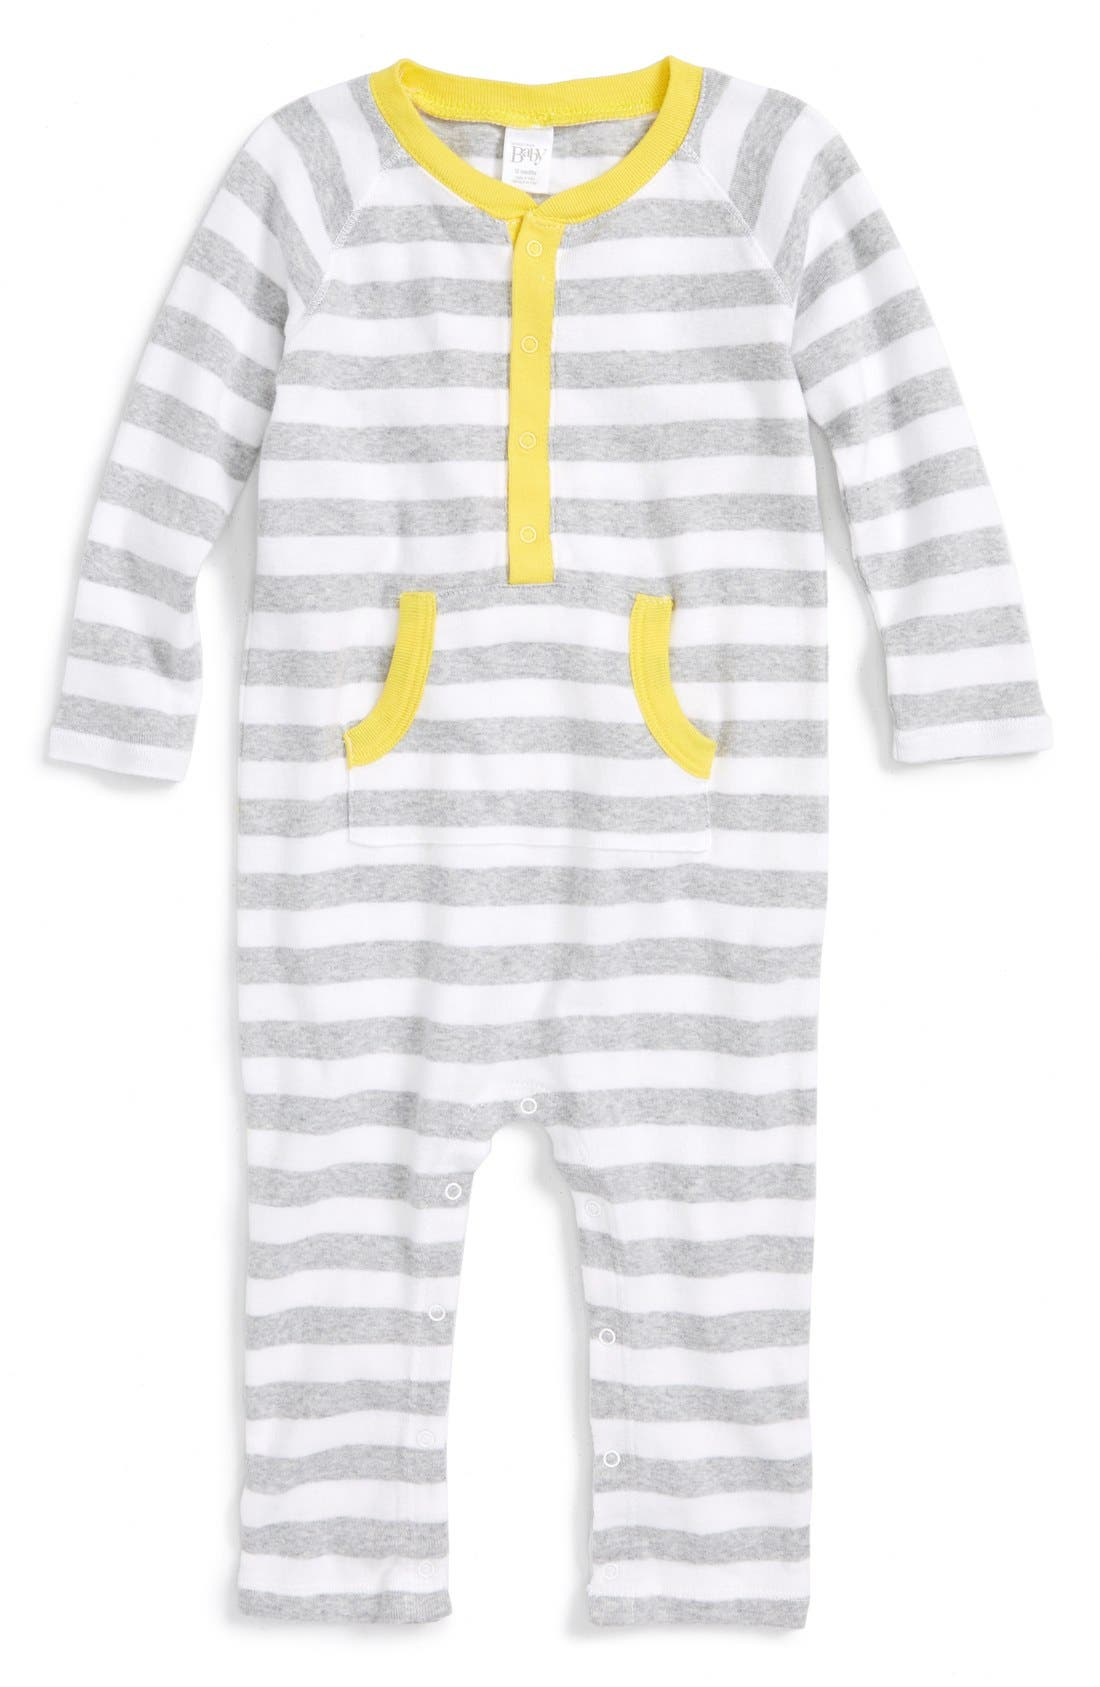 NORDSTROM BABY, Stripe Romper, Main thumbnail 1, color, 050